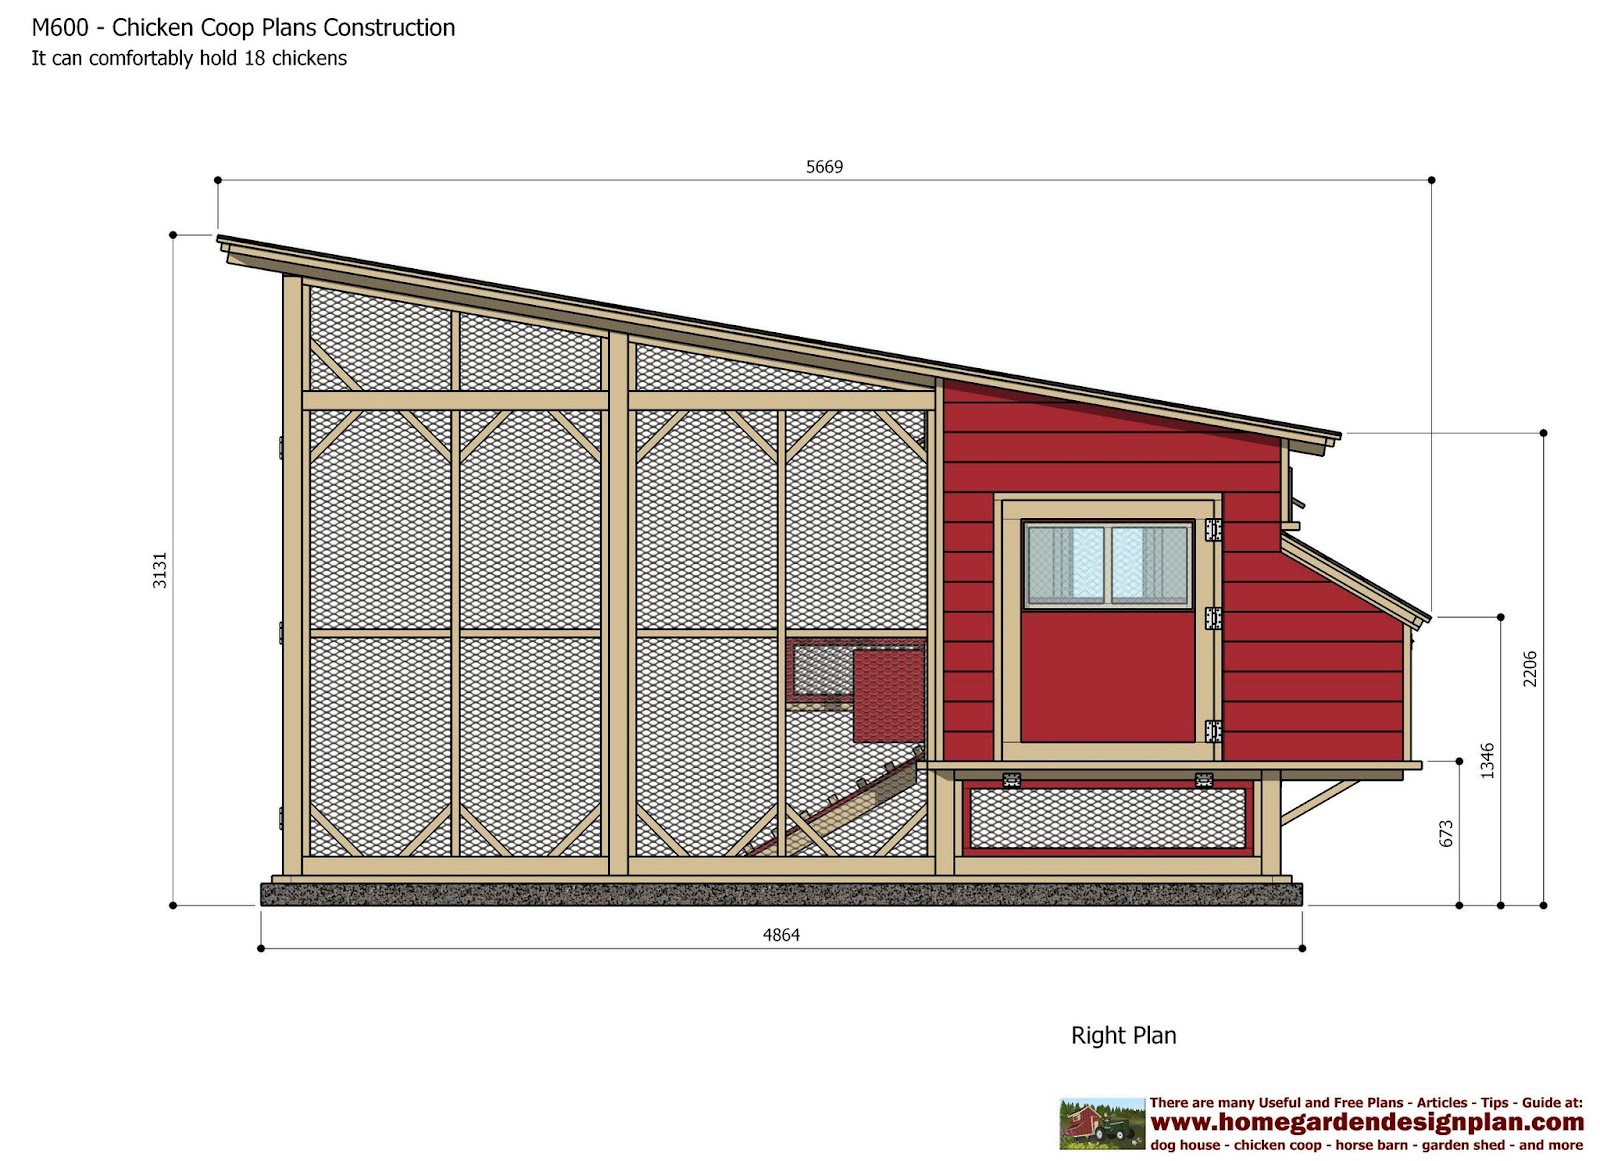 Chcken coop m600 chicken coop plans construction chicken for How to build a chicken hutch